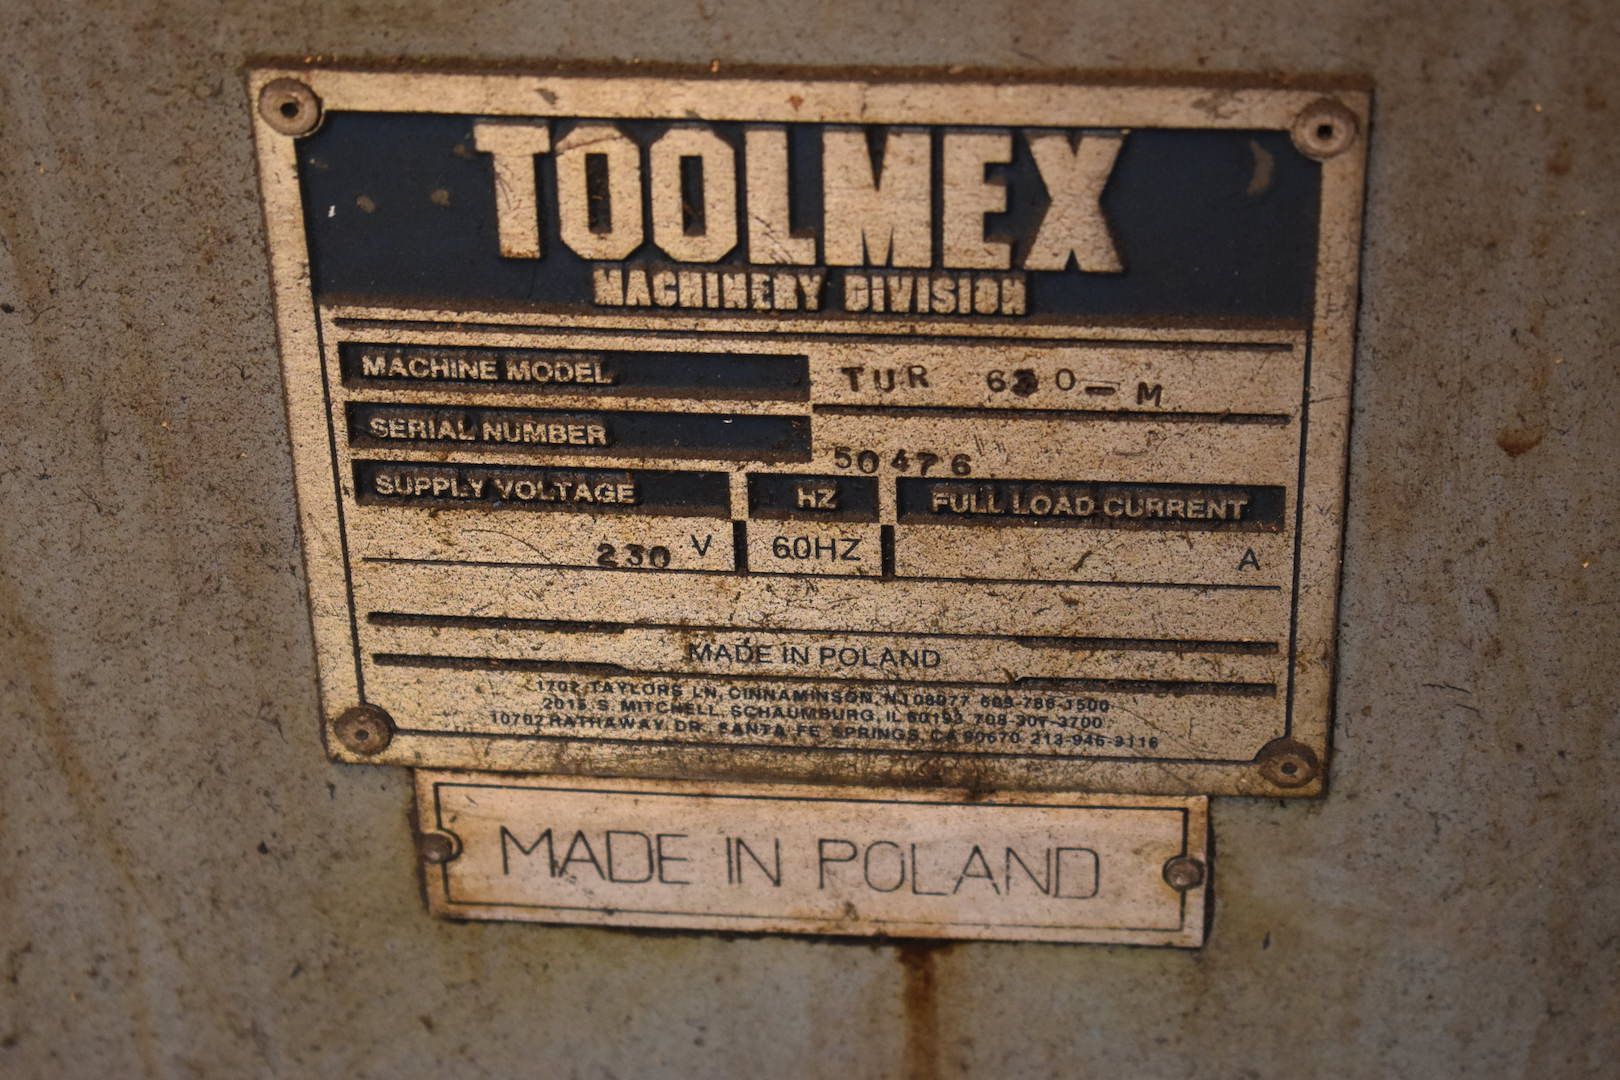 Lot 89 - Toolmex 24 in. x 120 in. (approx.) Model TUR630M Engine Lathe, S/N 50476 (approx. 1997), Motorized